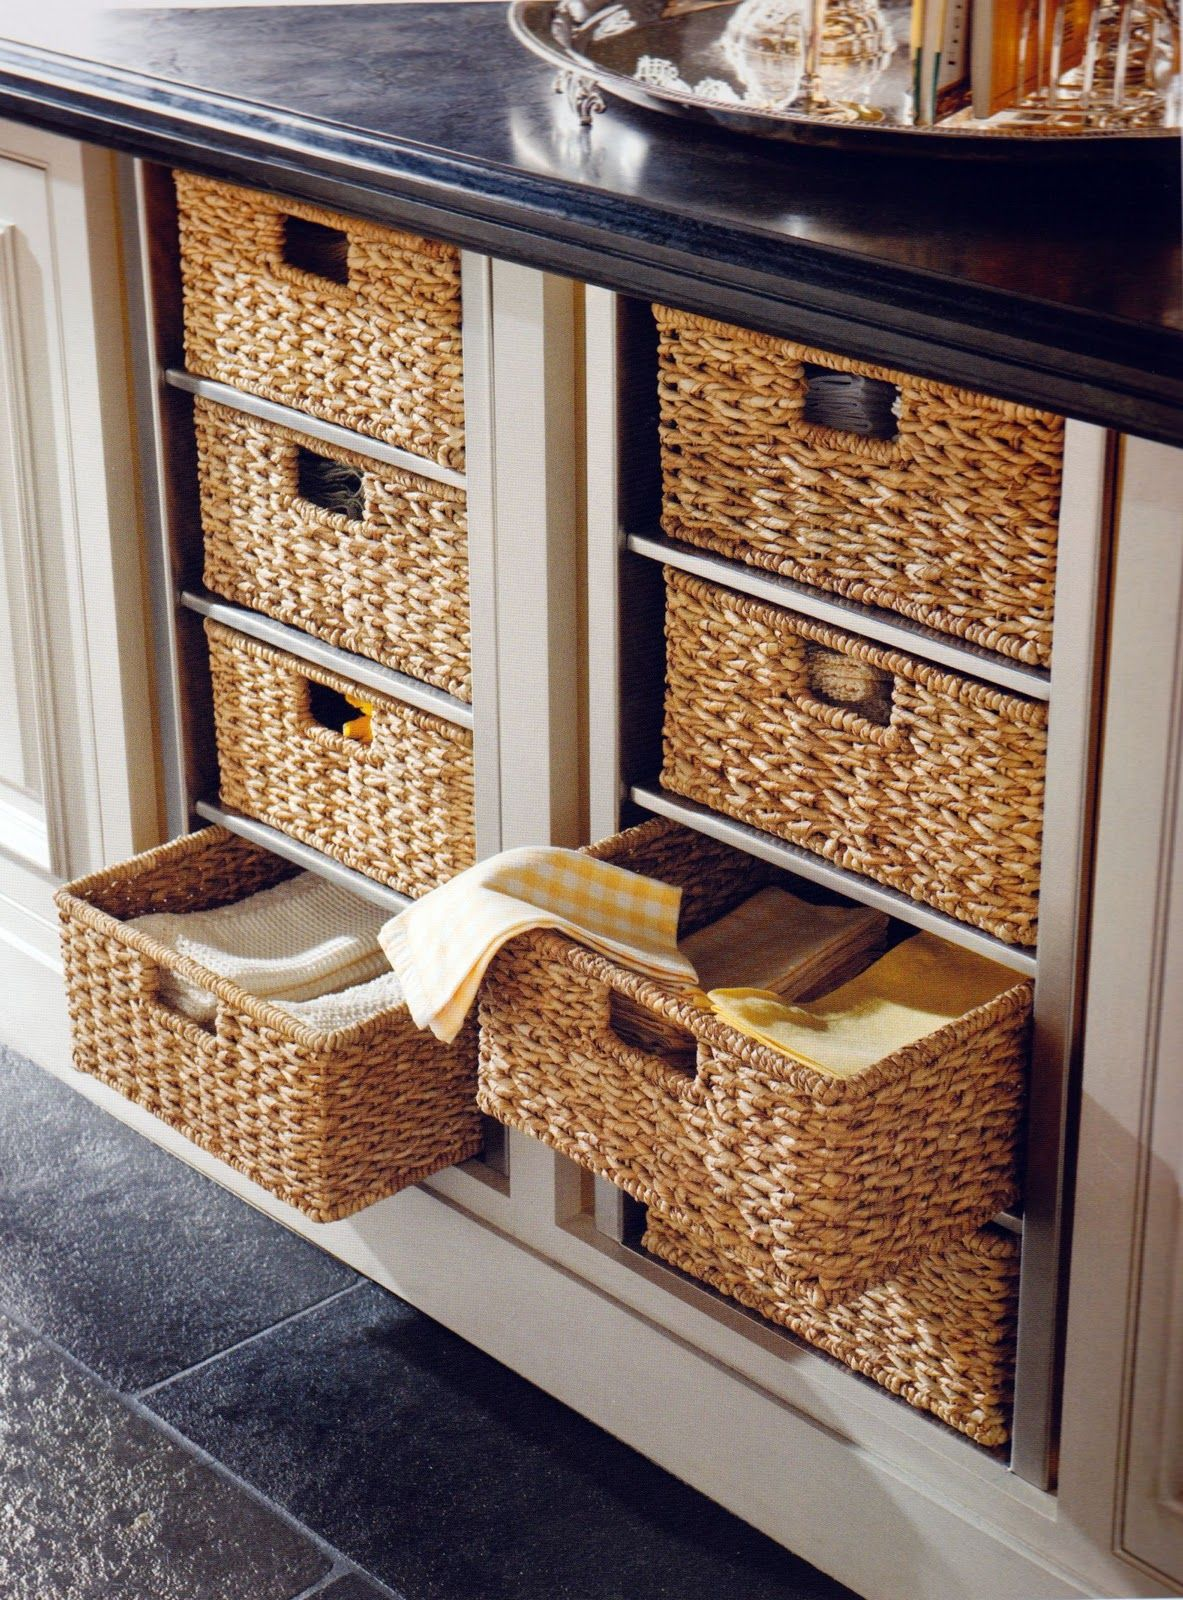 kitchen basket stainless cart drawers for where the dishwasher used to be good idea id rather wash dishes by hand than use a